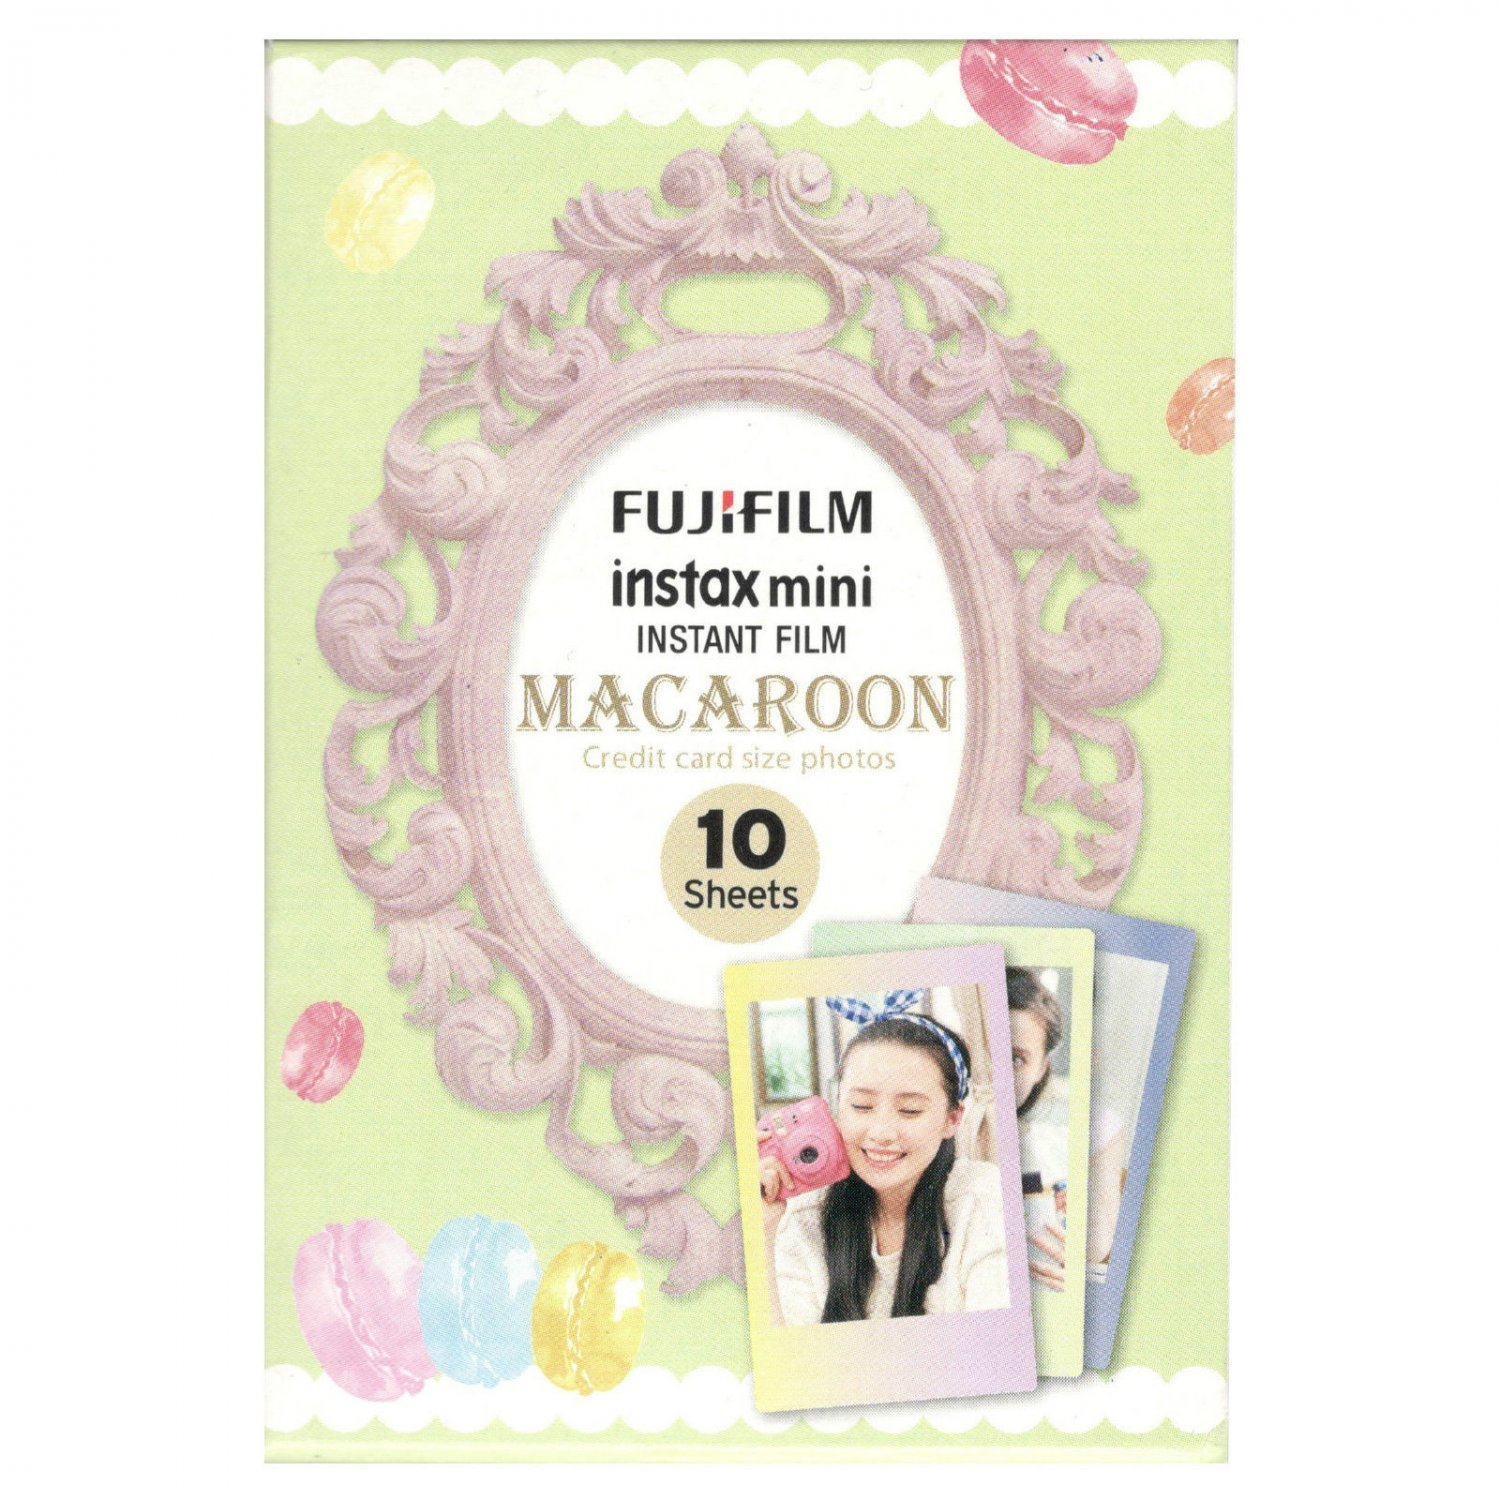 1 Pack 10 Photos Macaroon FujiFilm Fuji Instax Mini Film Polaroid 7S 8 50S SP-2 X391